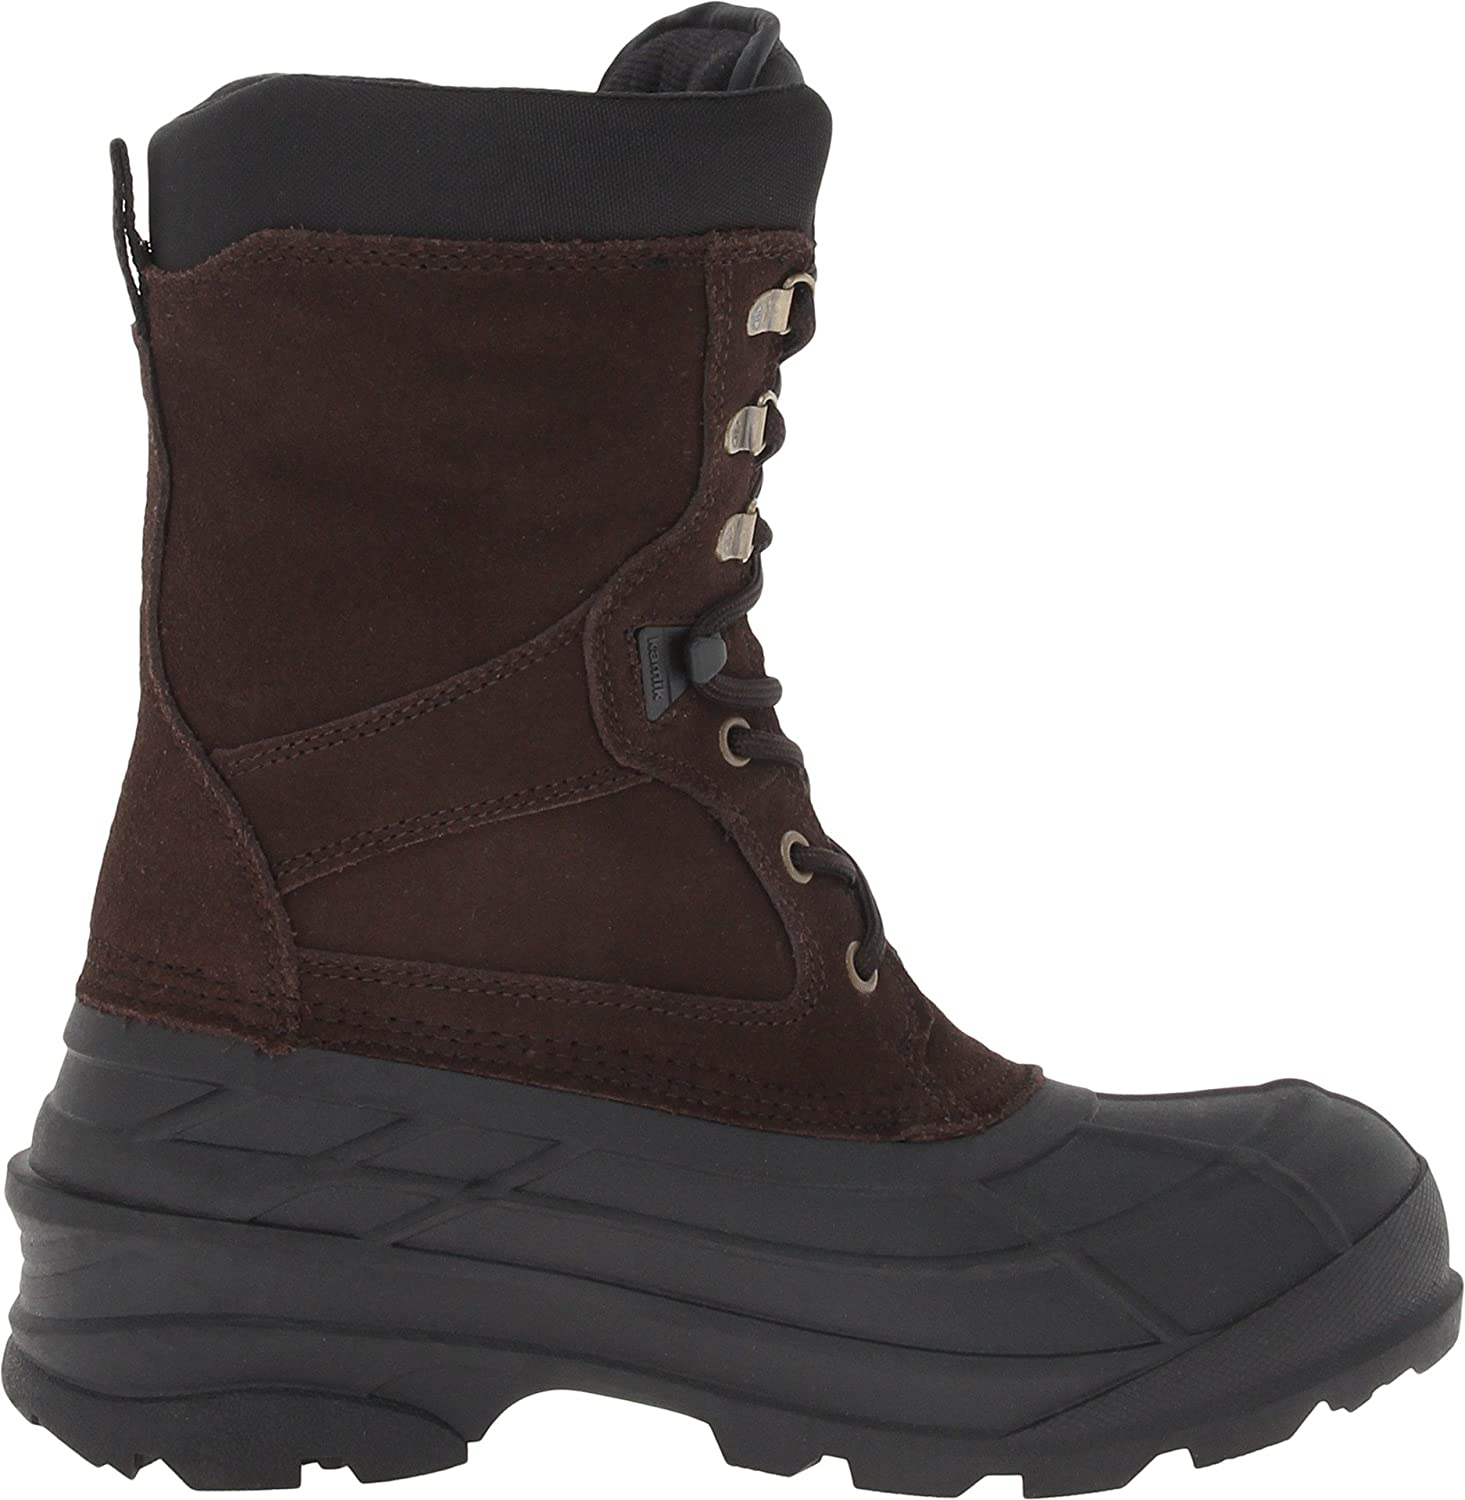 Kamik Nation2 Steel Toe Work Boots Mens Black Online Sale